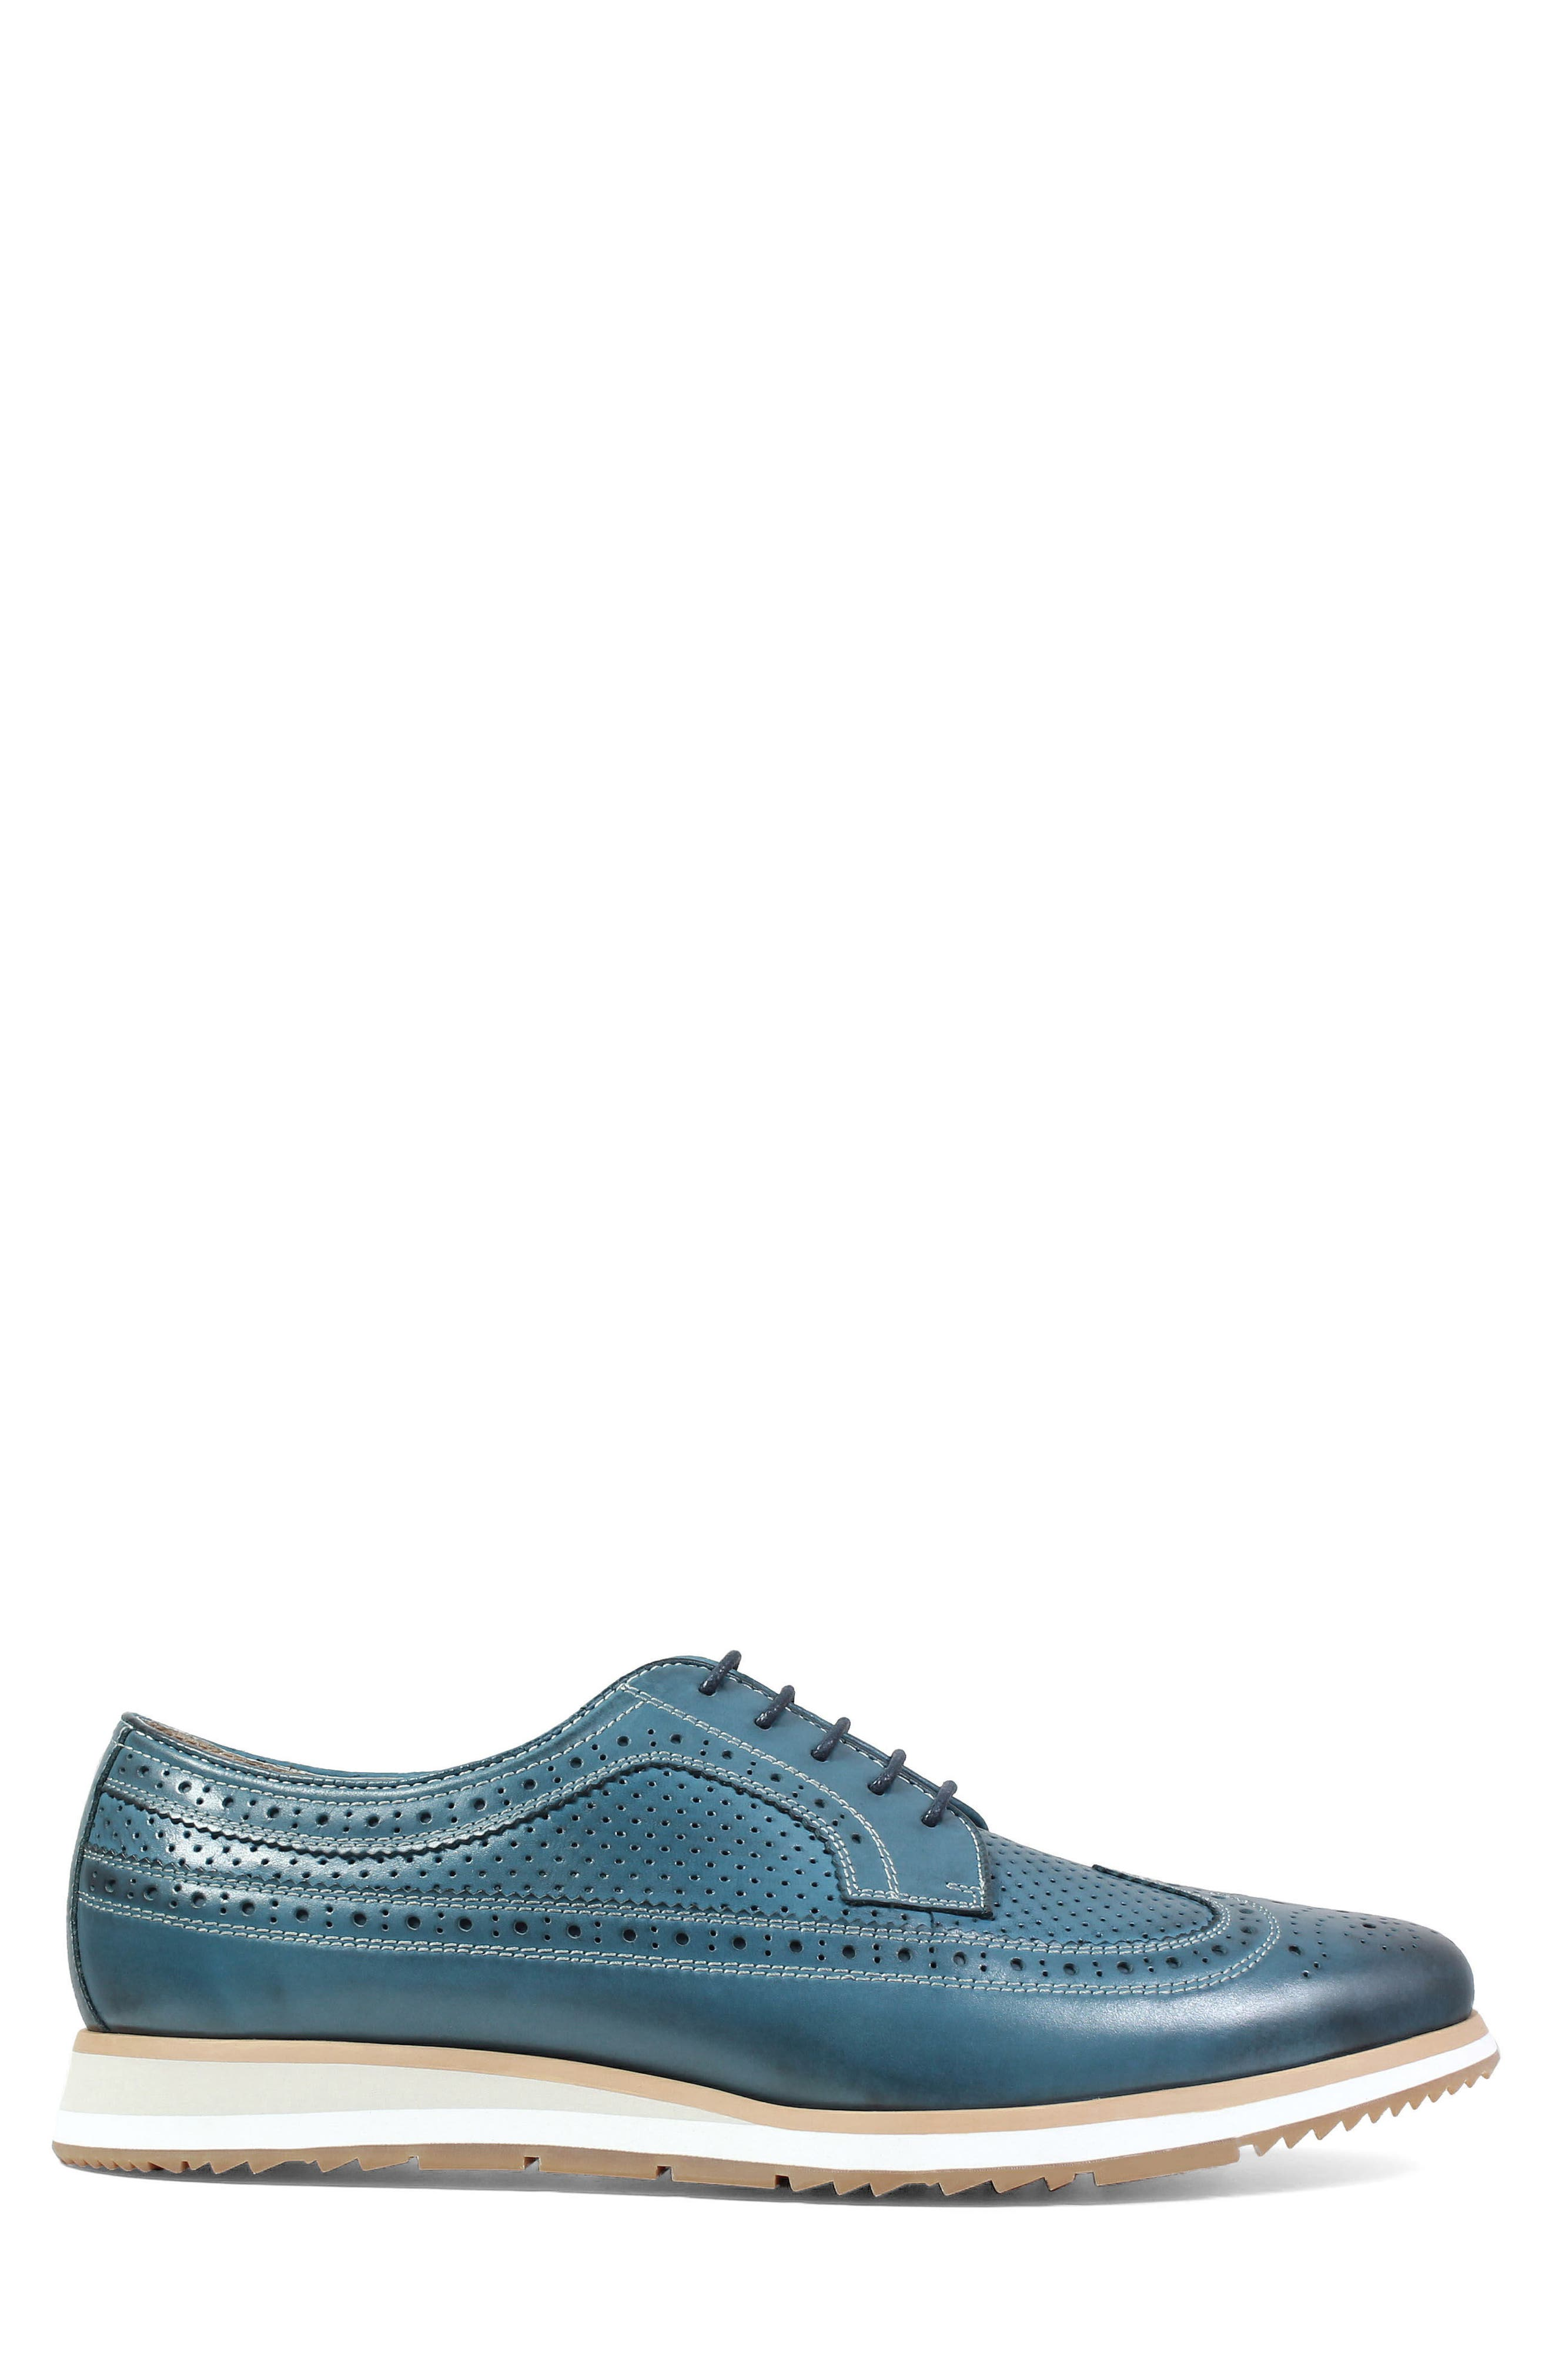 Limited Flux Perforated Wingtip Derby,                             Alternate thumbnail 3, color,                             Indigo Leather